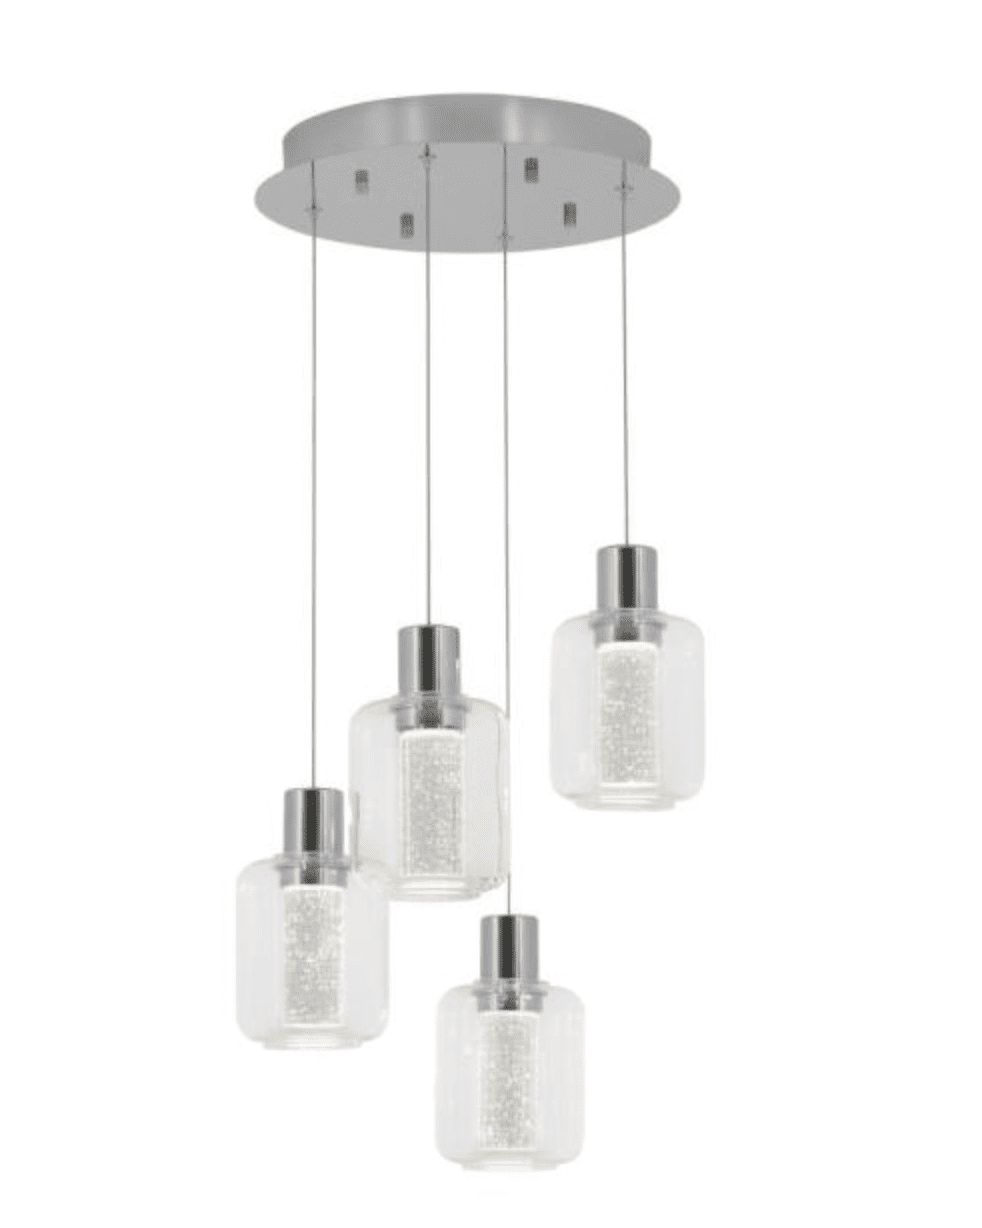 Home Depot: Up to 50% off select lighting!